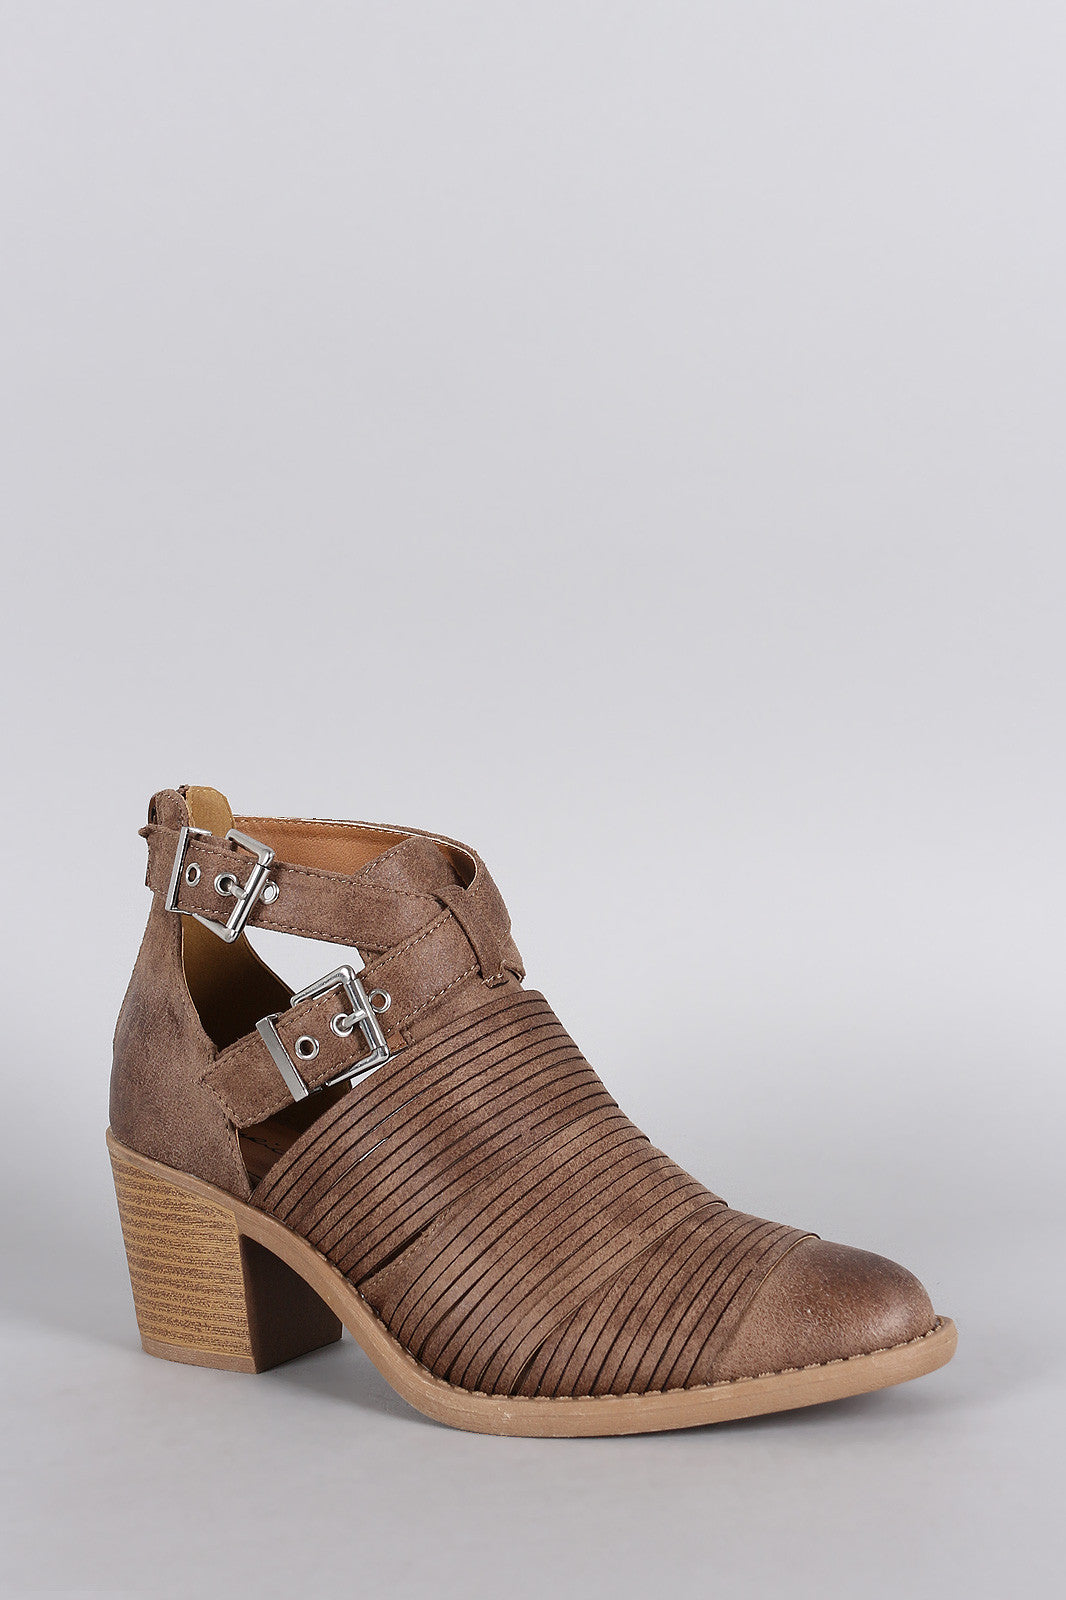 Qupid Slashed Crisscross Buckled Strap Chunky Heeled Ankle Boots - Thick 'N' Curvy Shop - 8